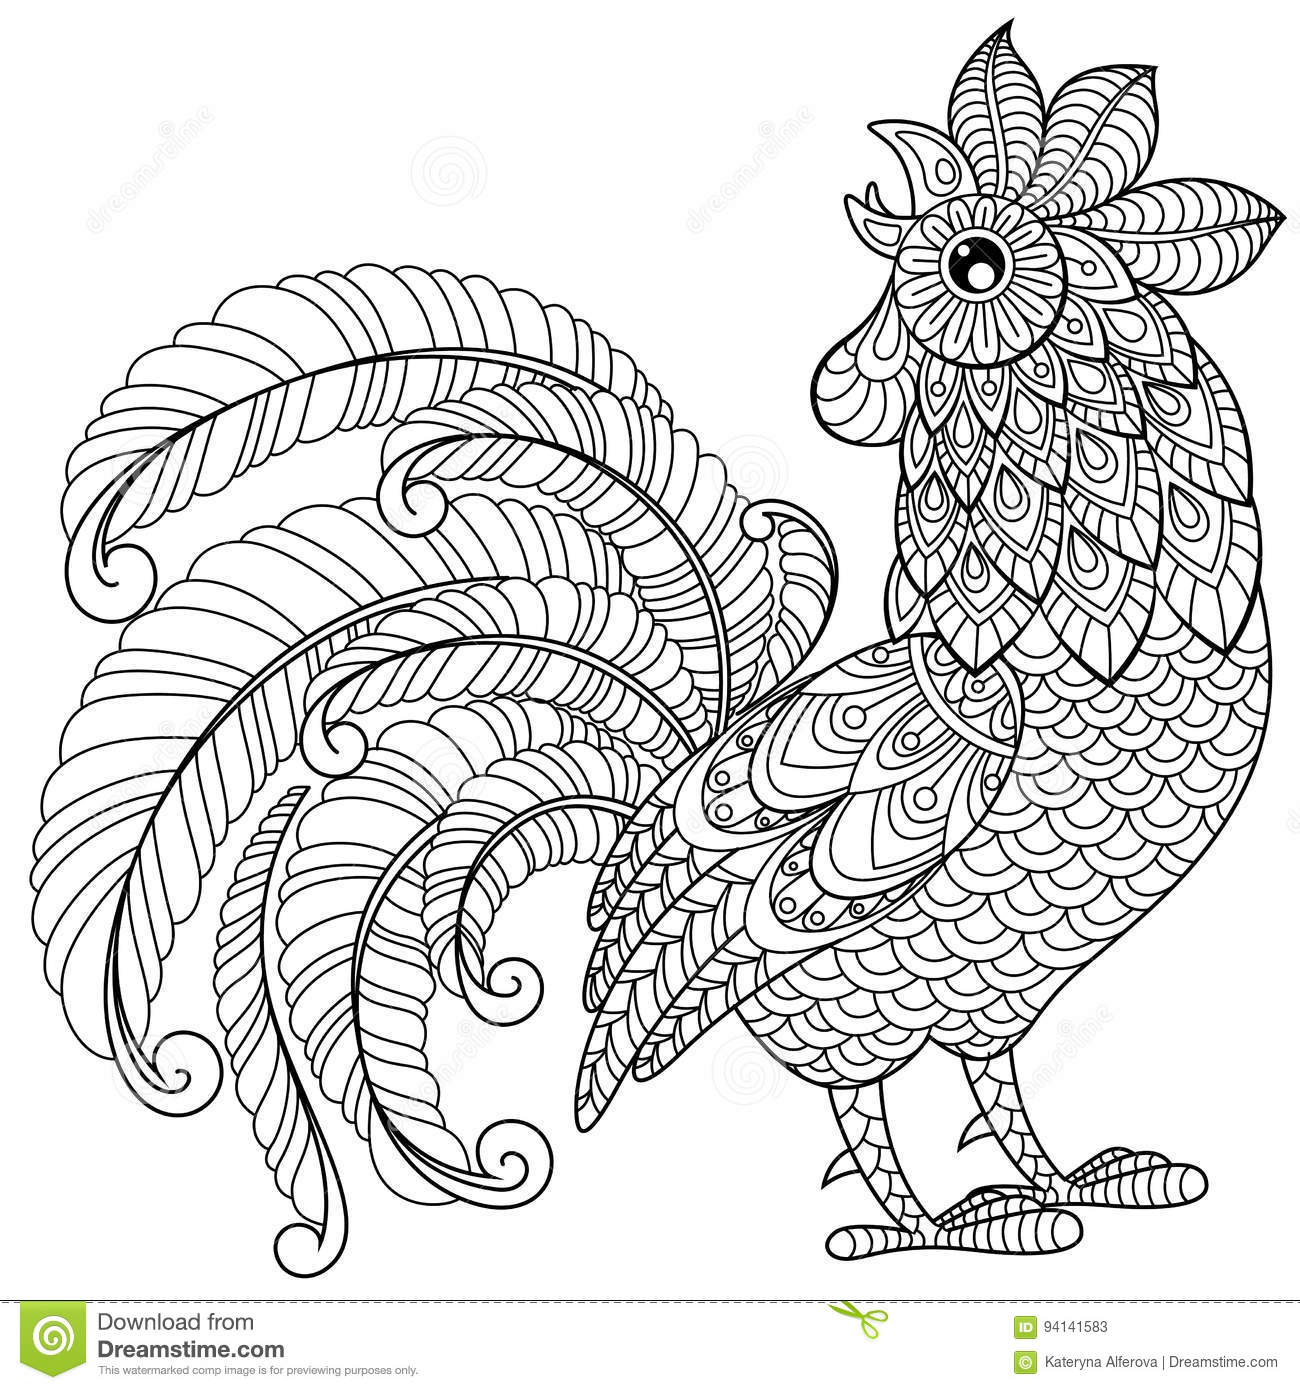 Adult Coloring New Year Coloring Pages